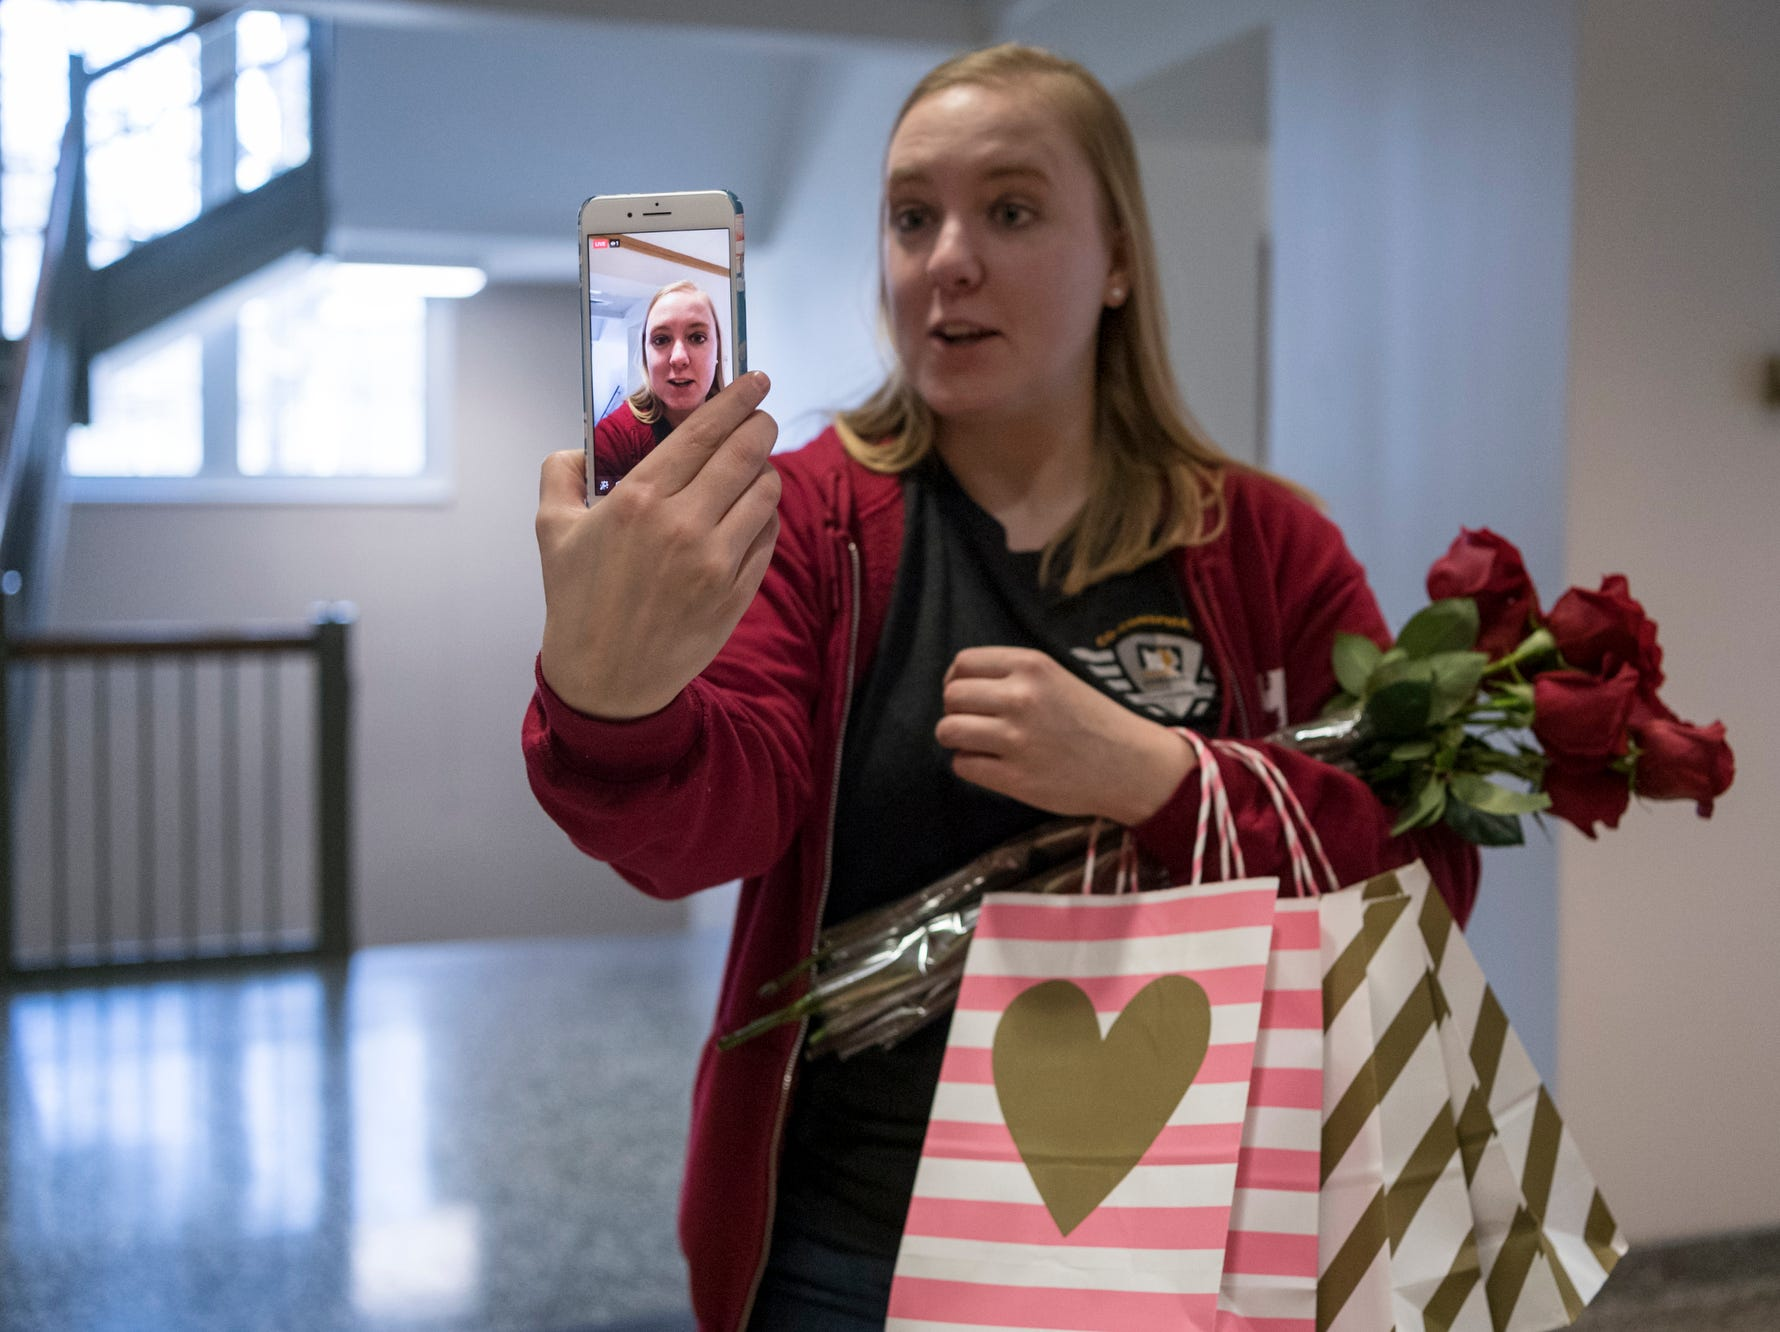 Amanda Coburn begins to livestream her Cuddlegram delivery of three kittens to the Vanderburgh Humane Society Facebook page at the University of Evansville's Schroeder School of Business in Evansville, Ind., Thursday afternoon, Feb. 14, 2019. VHS raised over $3,000 through the second annual fundraiser.